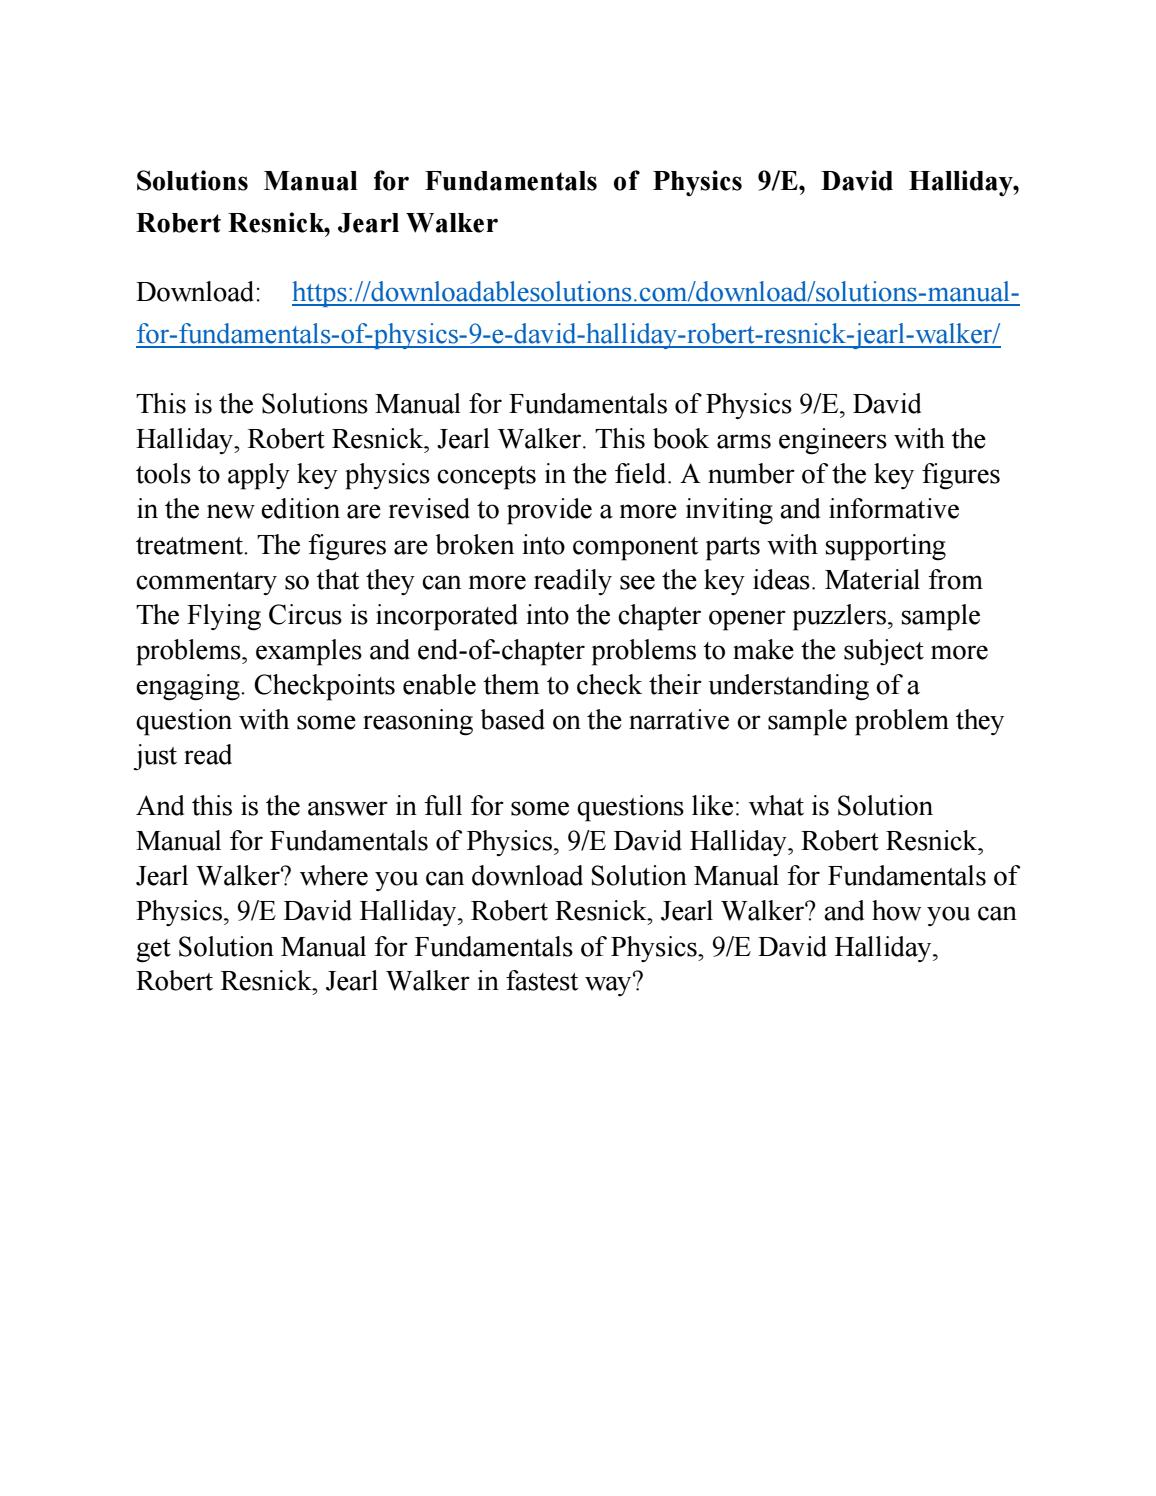 Solutions Manual for Fundamentals of Physics 9/E, David Halliday, Robert  Resnick, Jearl Walker by java28 - issuu